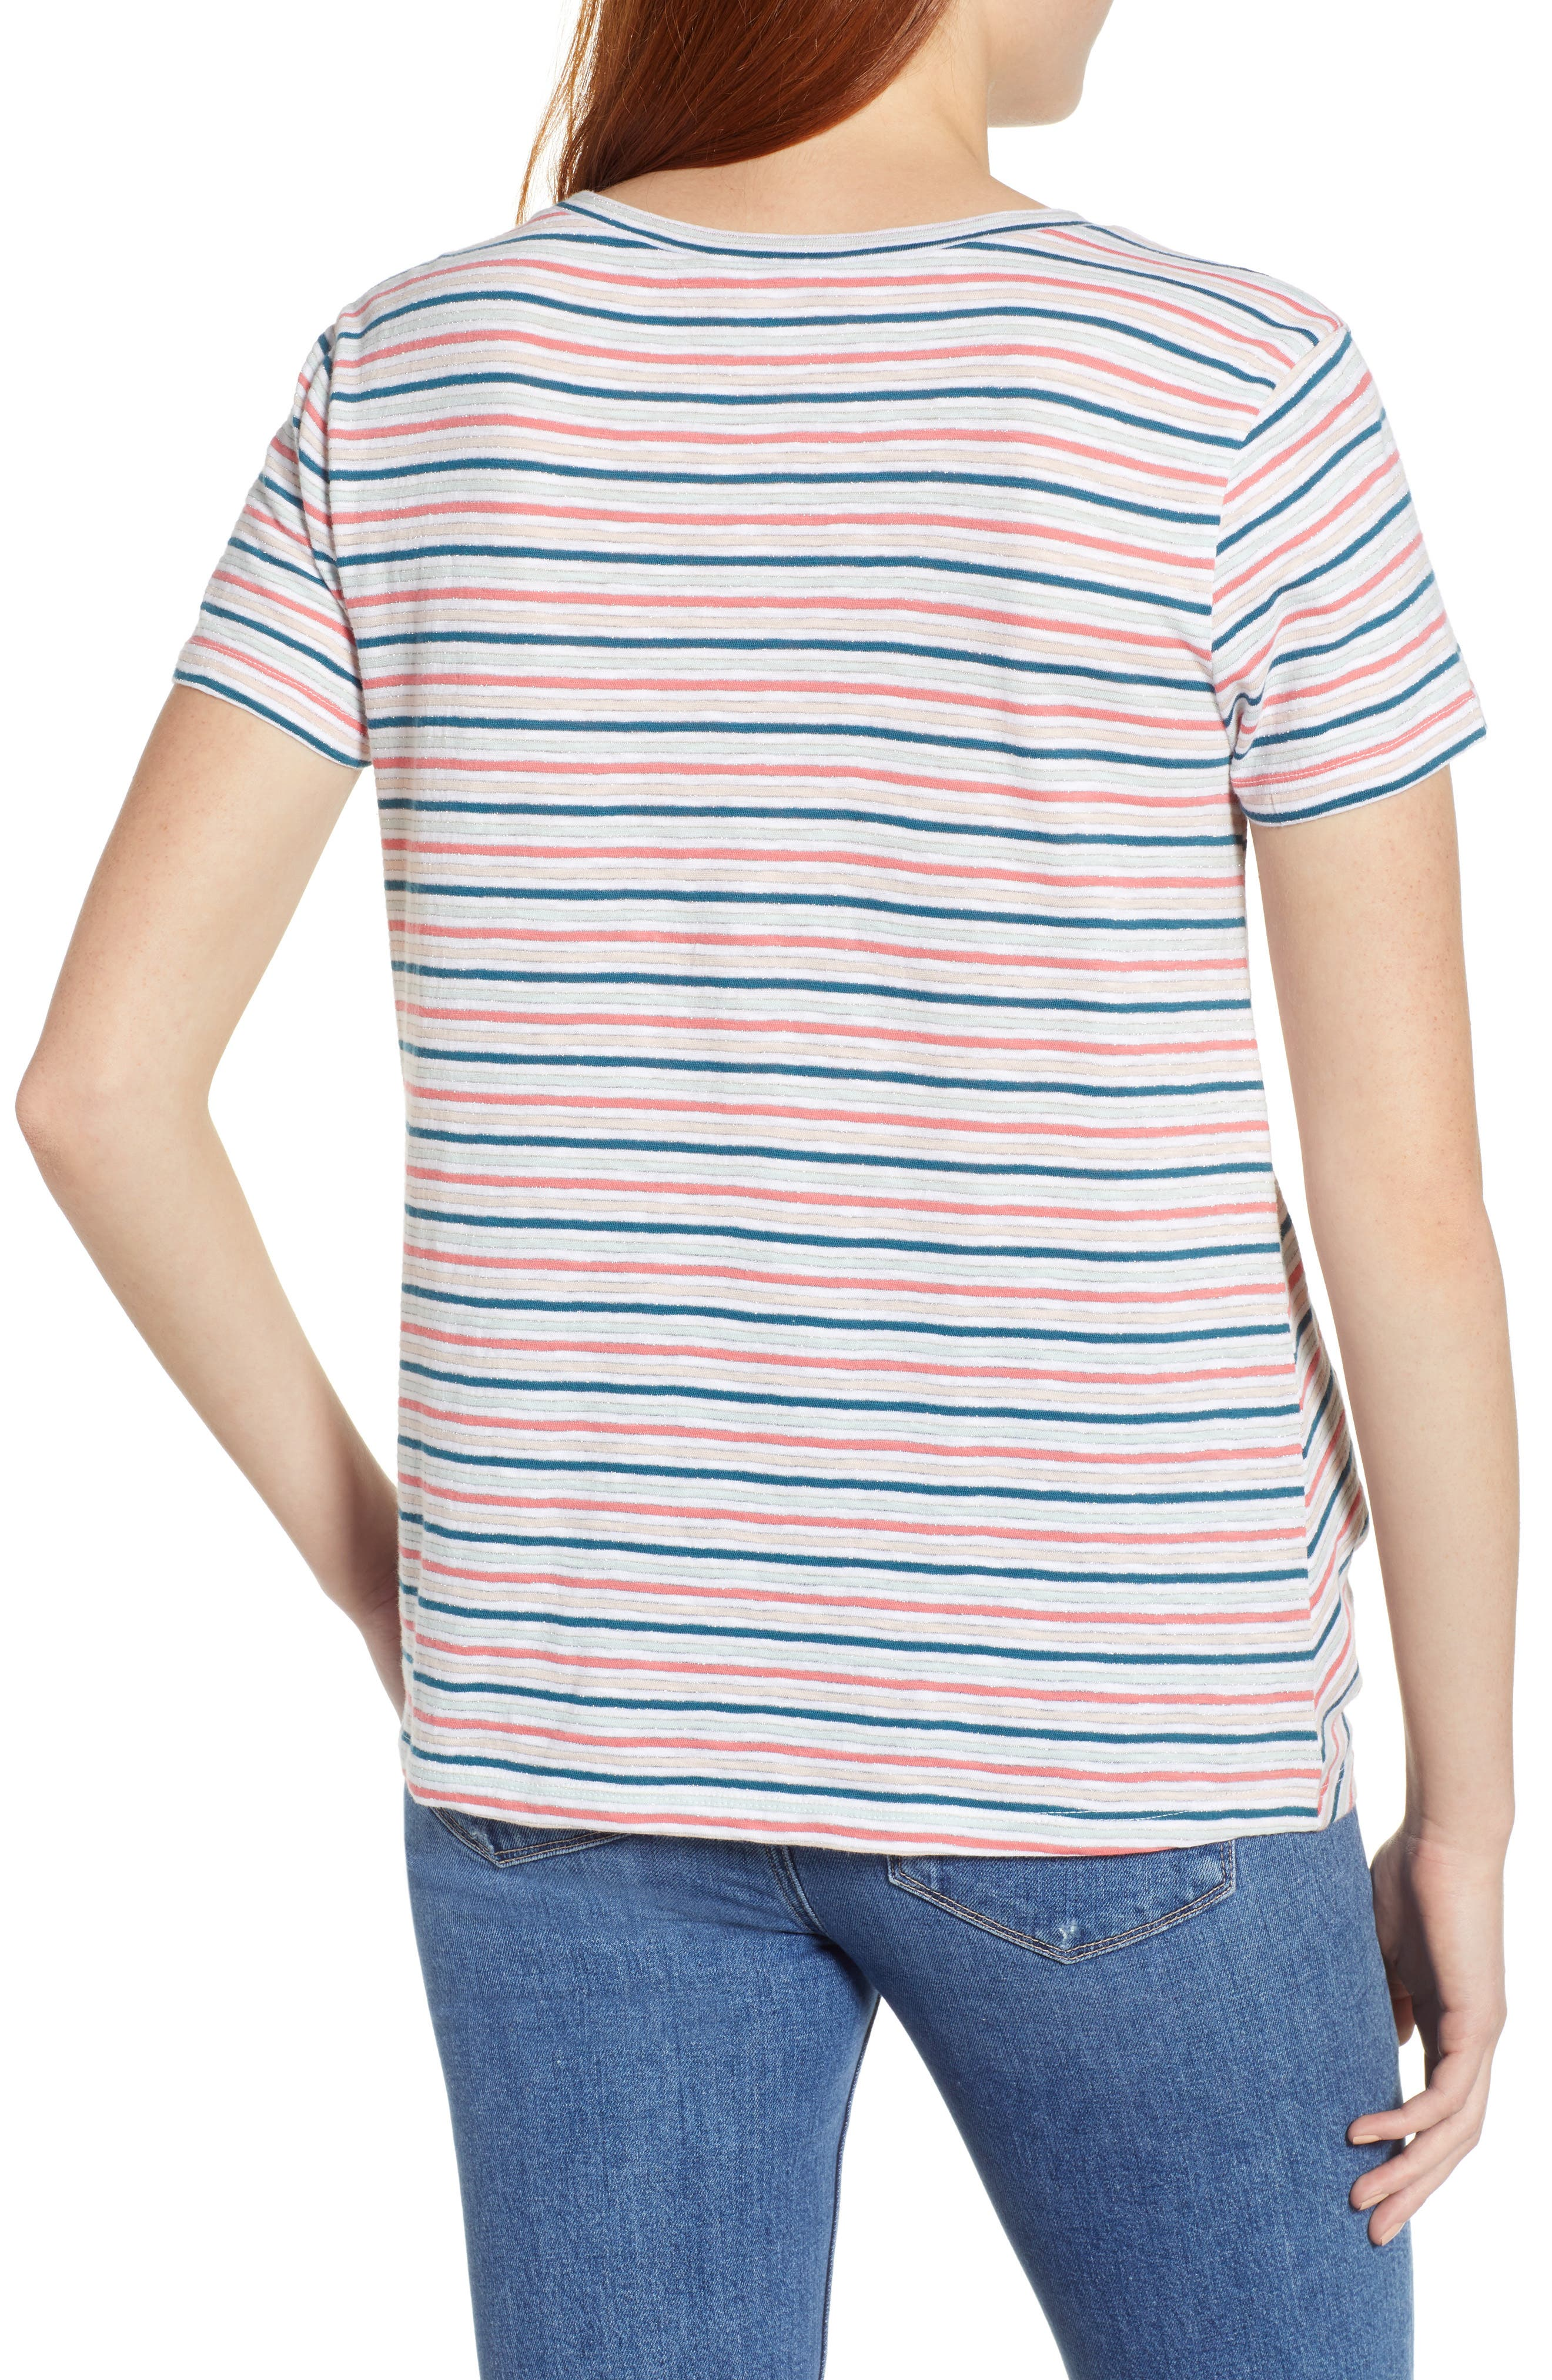 CASLON<SUP>®</SUP>, Metallic Stripe Knot Front Tee, Alternate thumbnail 2, color, IVORY- BLUE CANDY STP